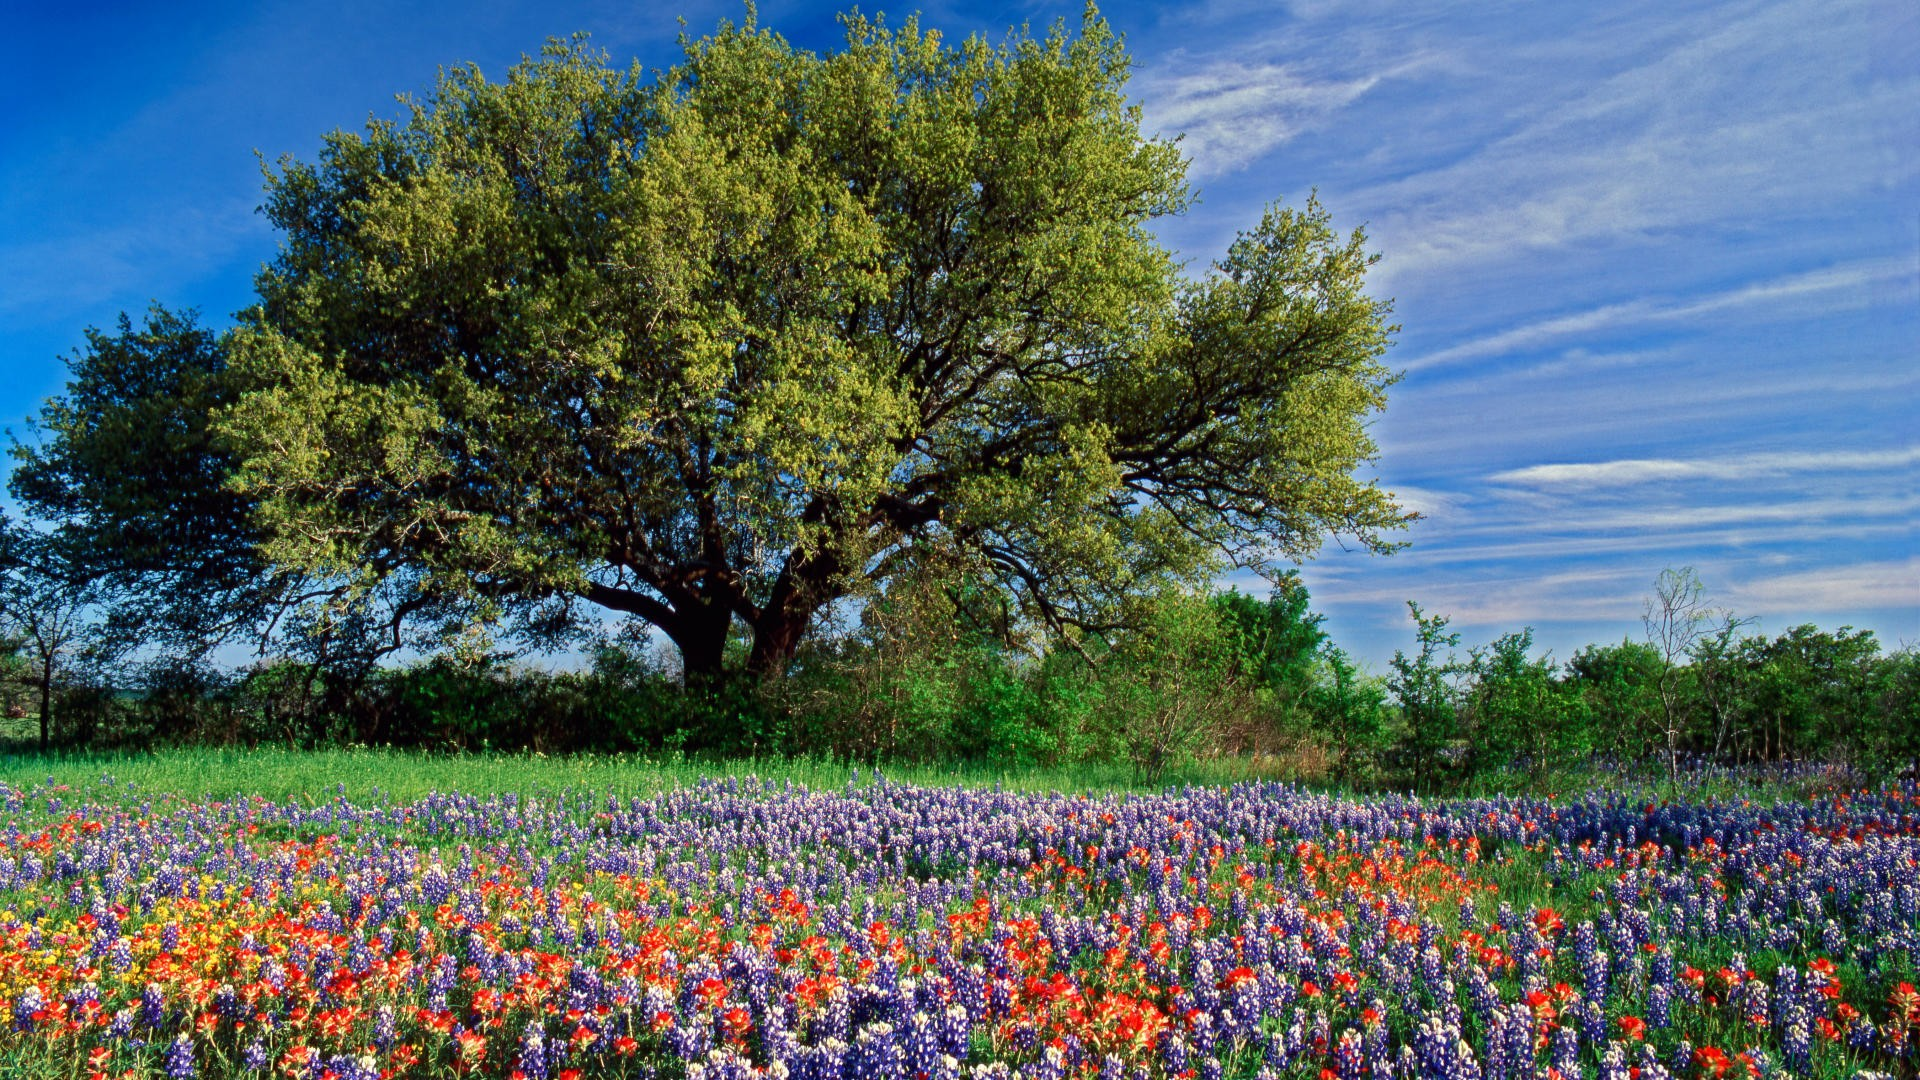 Flowers In Spring Field Hd Wallpaper Background Image 1920x1080